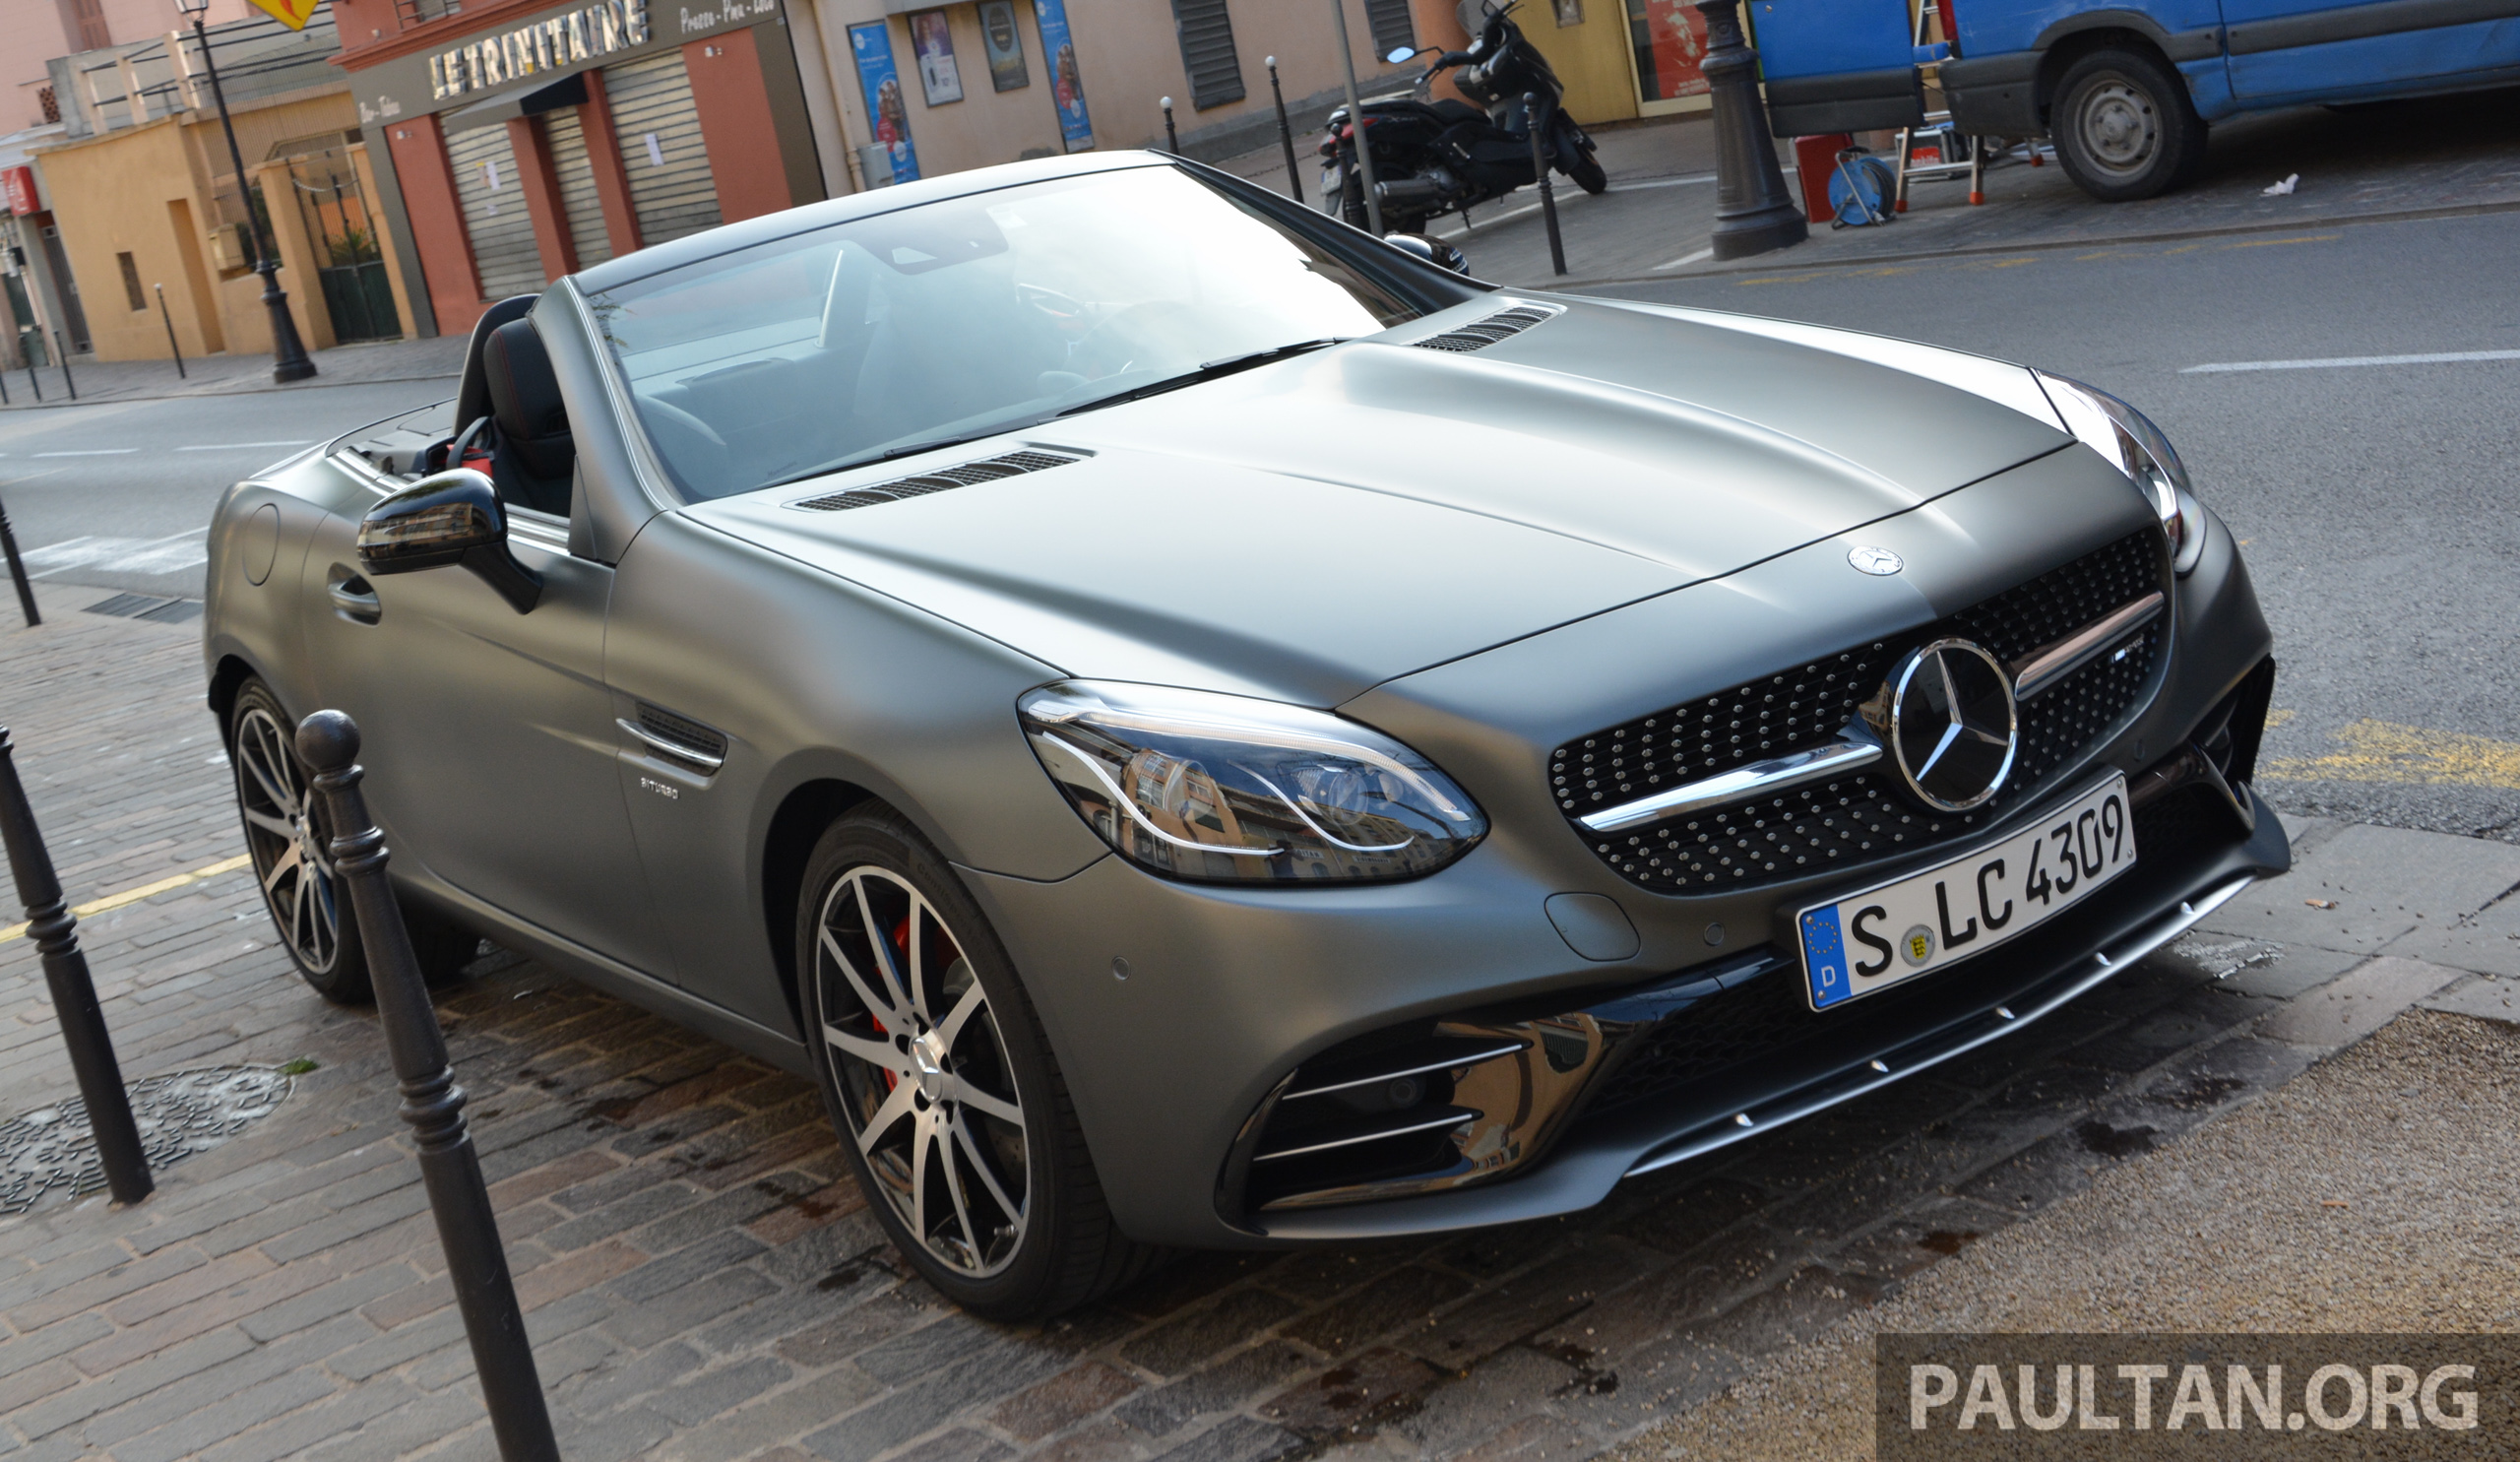 Driven mercedes amg slc43 in the french riviera image 474546 for Nice mercedes benz